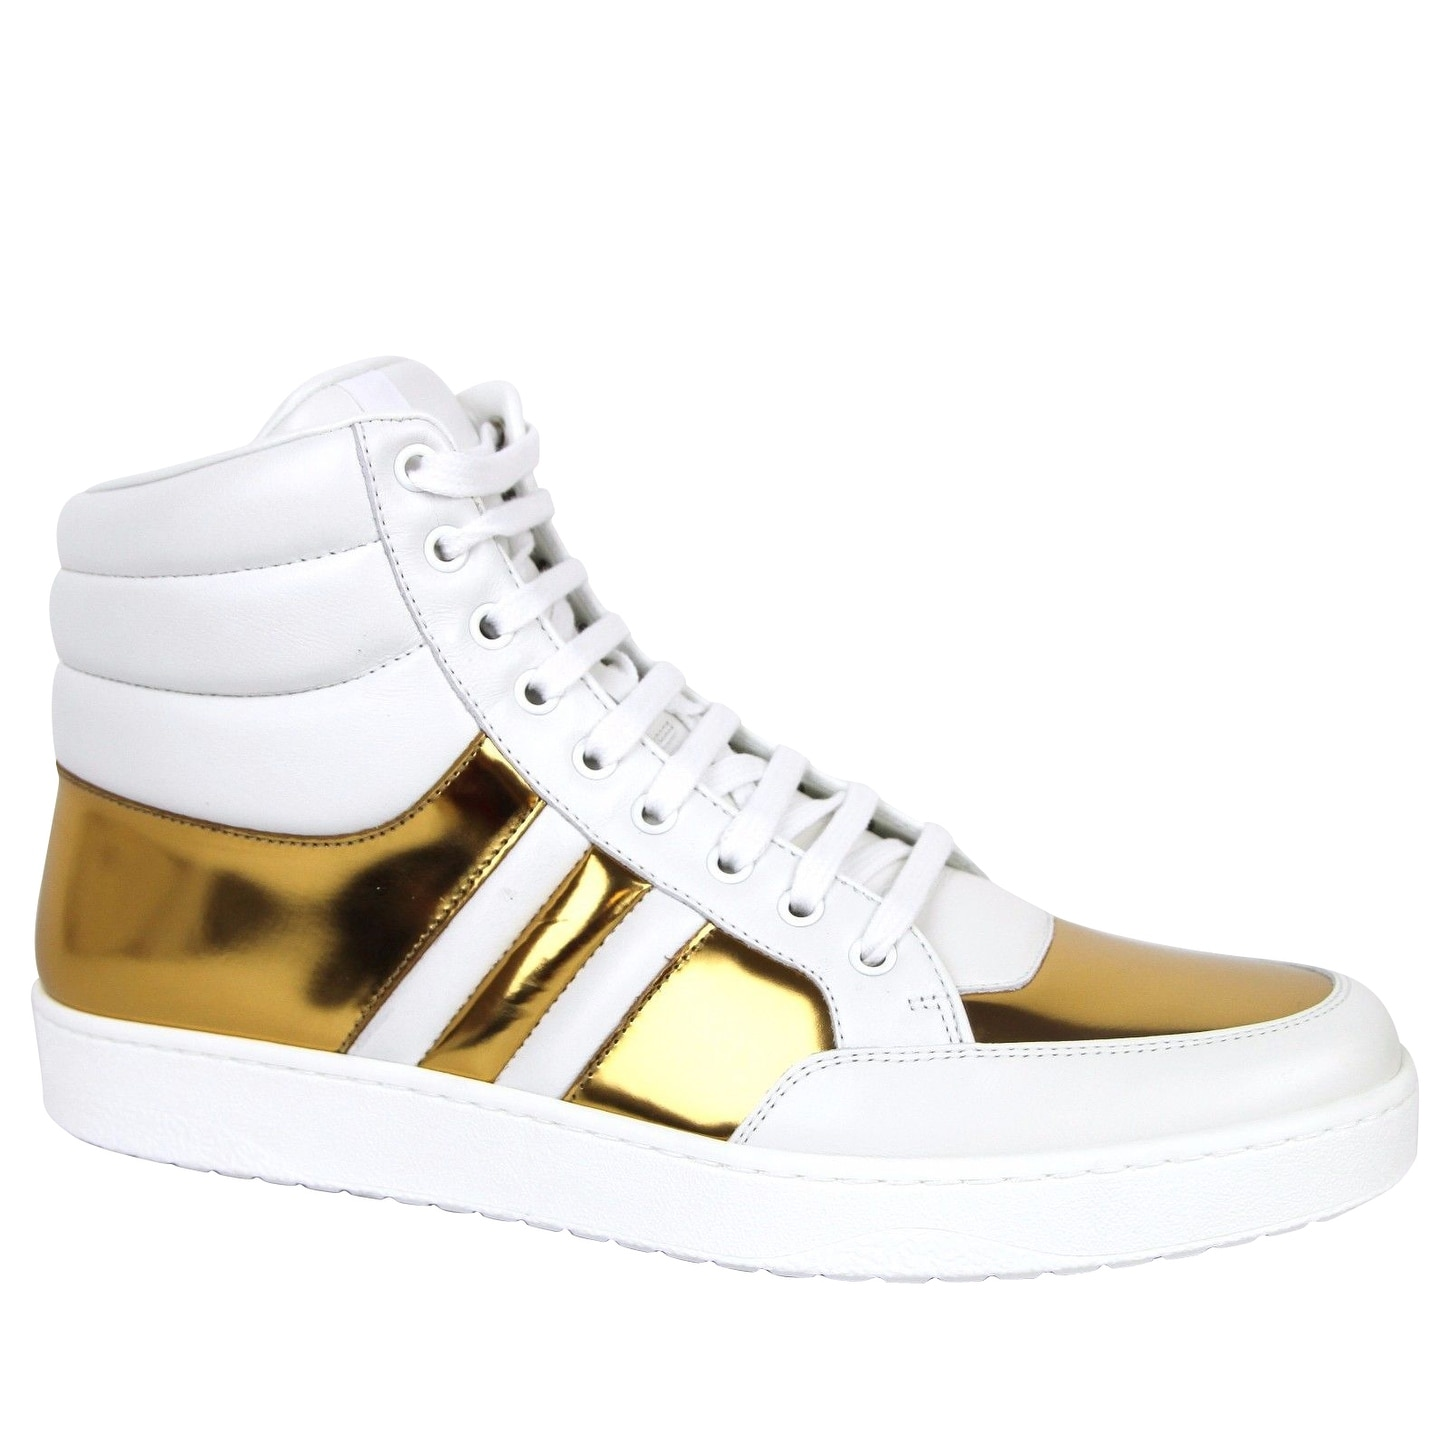 Gucci Men's High top Contrast Padded